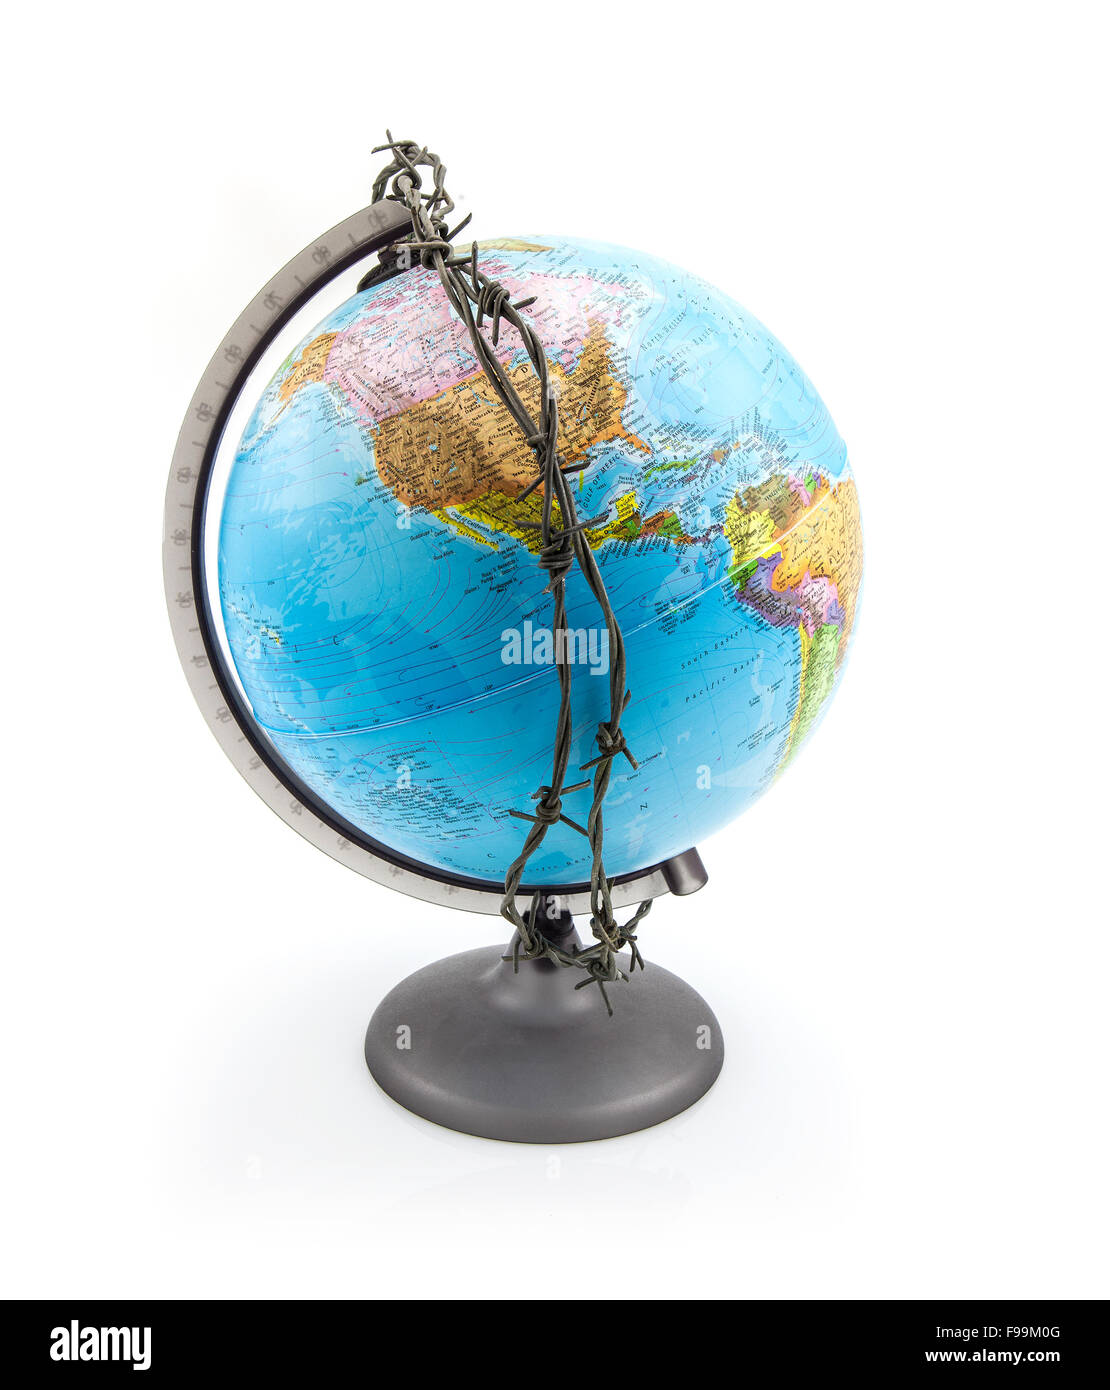 Earth Wire Stock Photos & Earth Wire Stock Images - Alamy